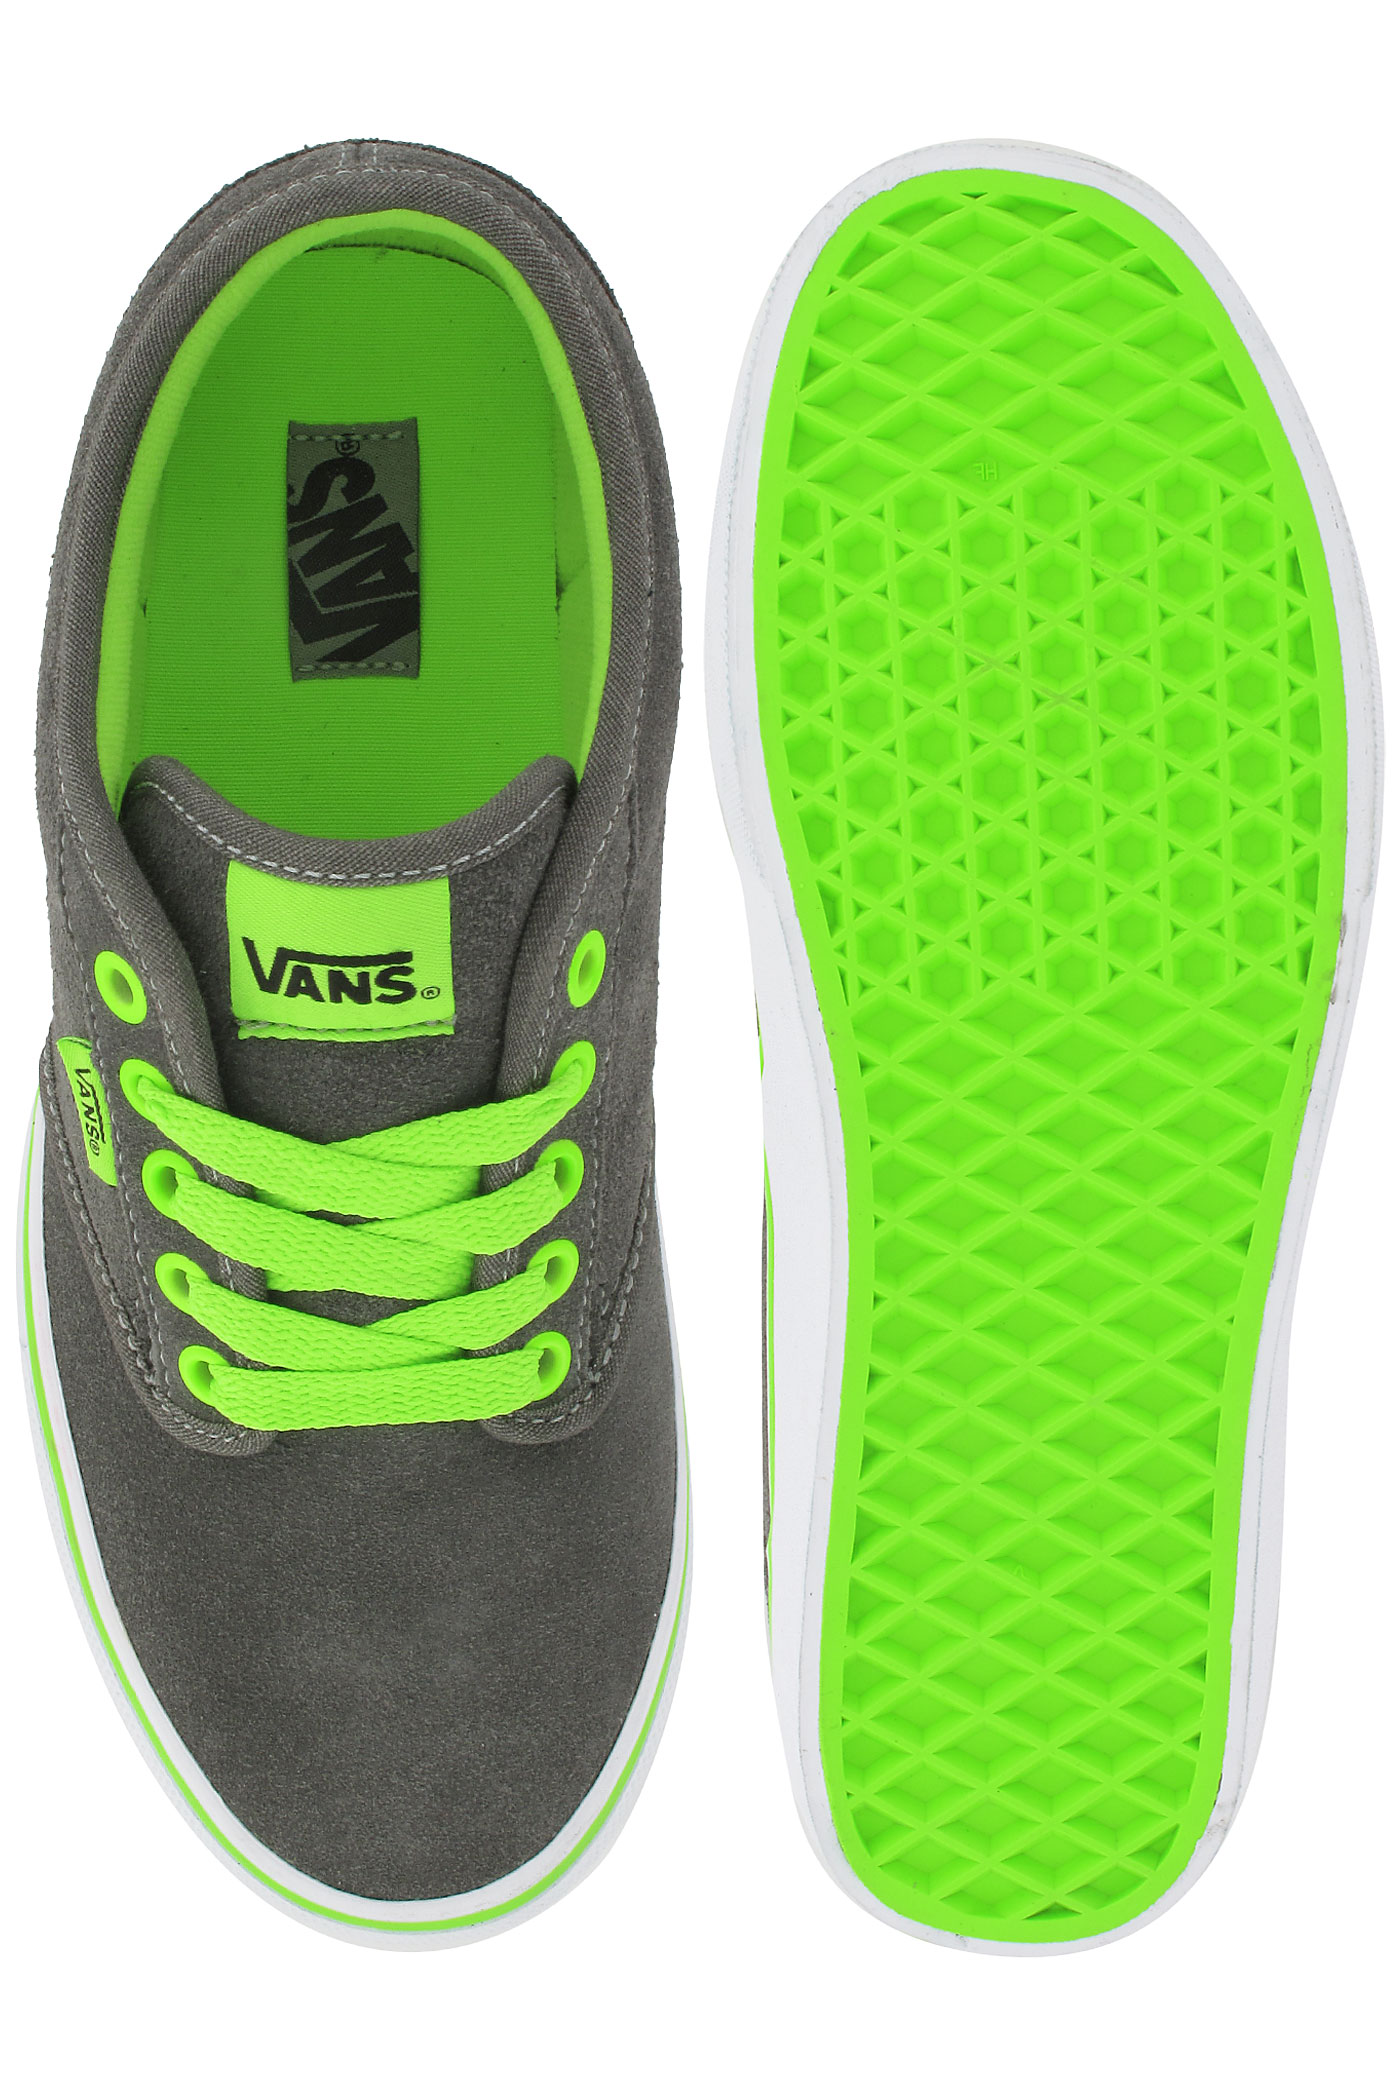 New  Shoes And Sneakers Vans Authentic Leather Shoe Women Neon Pink